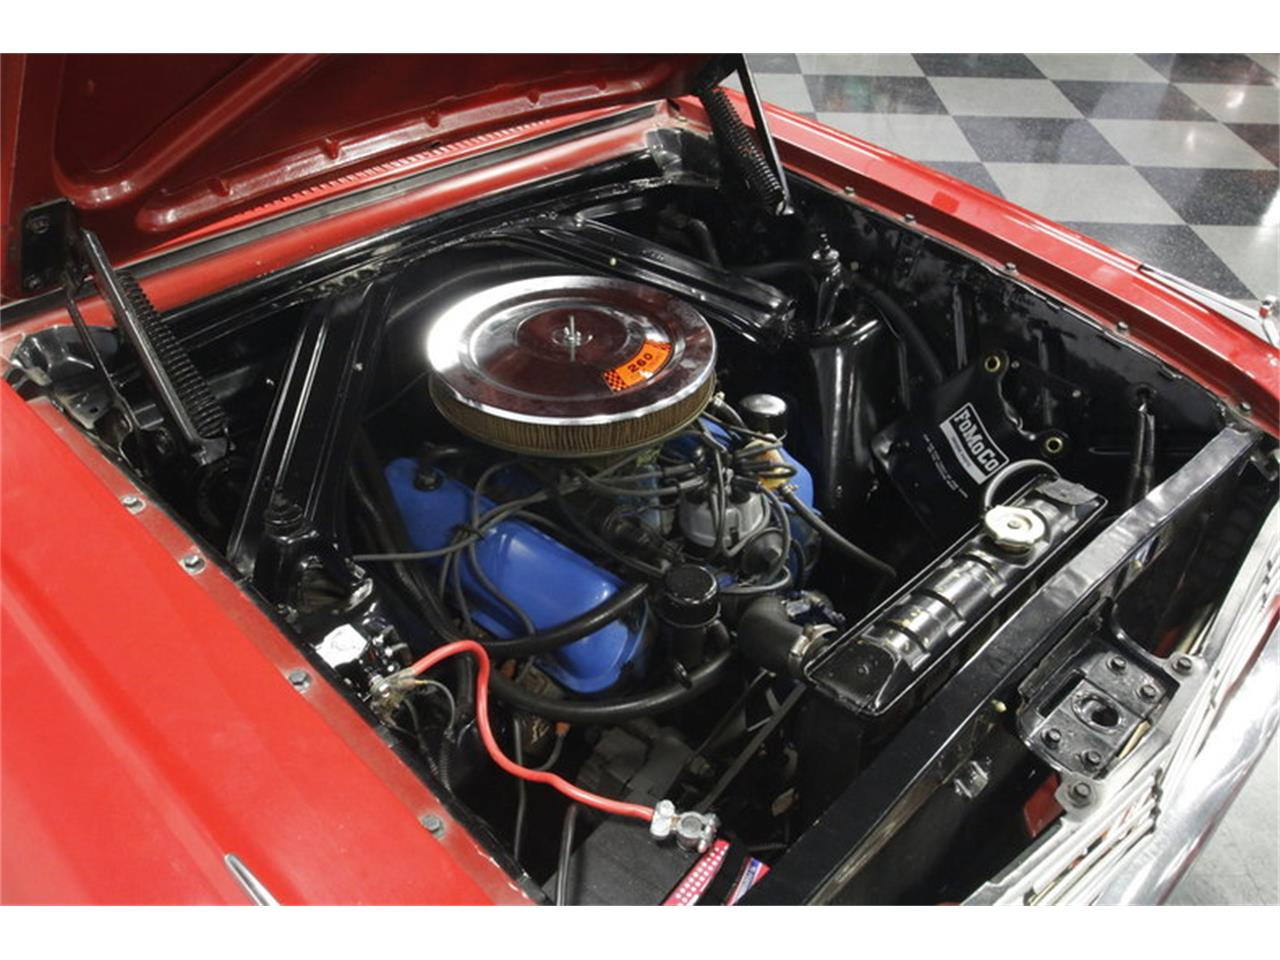 Large Picture of '63 Falcon located in North Carolina - $29,995.00 Offered by Streetside Classics - Charlotte - NMVT